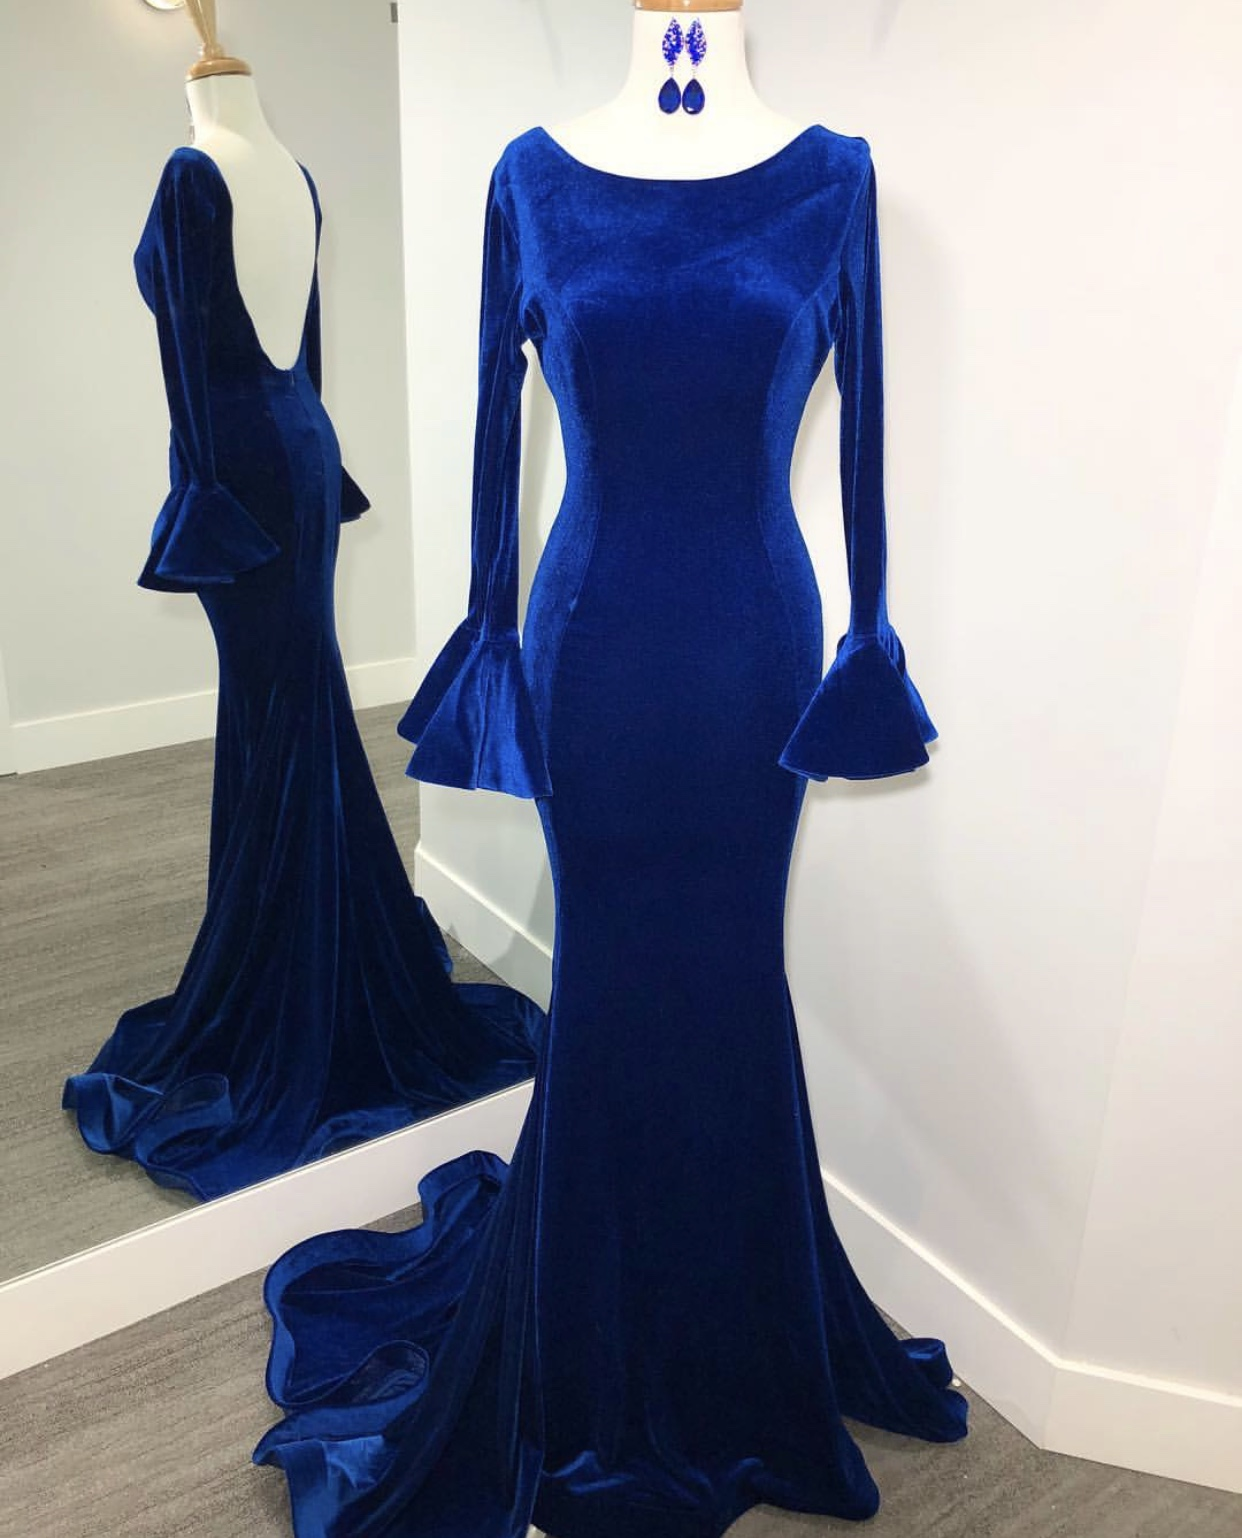 Ruched Long Sleeves Velvet Evening Dresses 2019,Royal Blue Mermaid Evening Party Dresses,Backless Formal Dresses